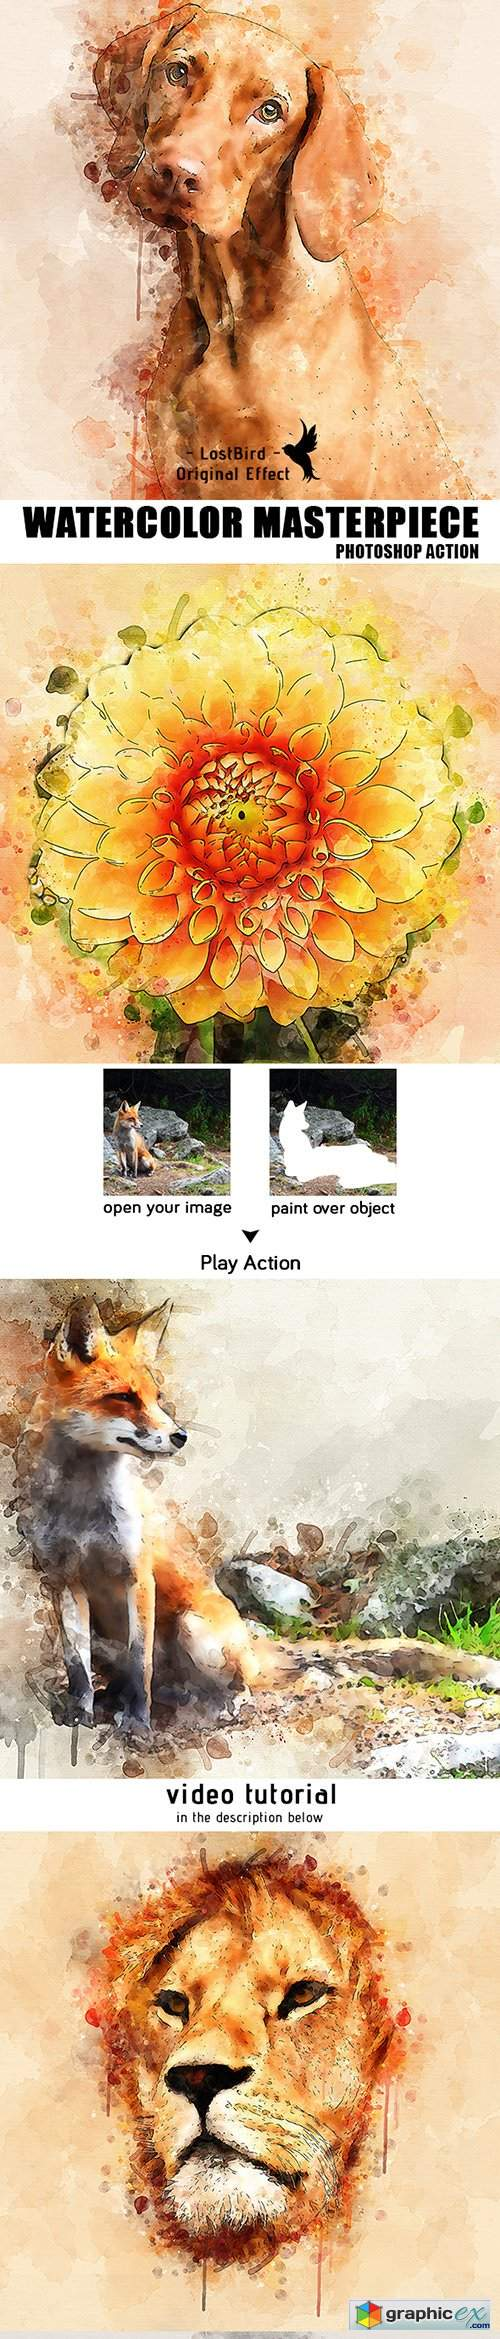 Watercolor Masterpiece - Photoshop Action